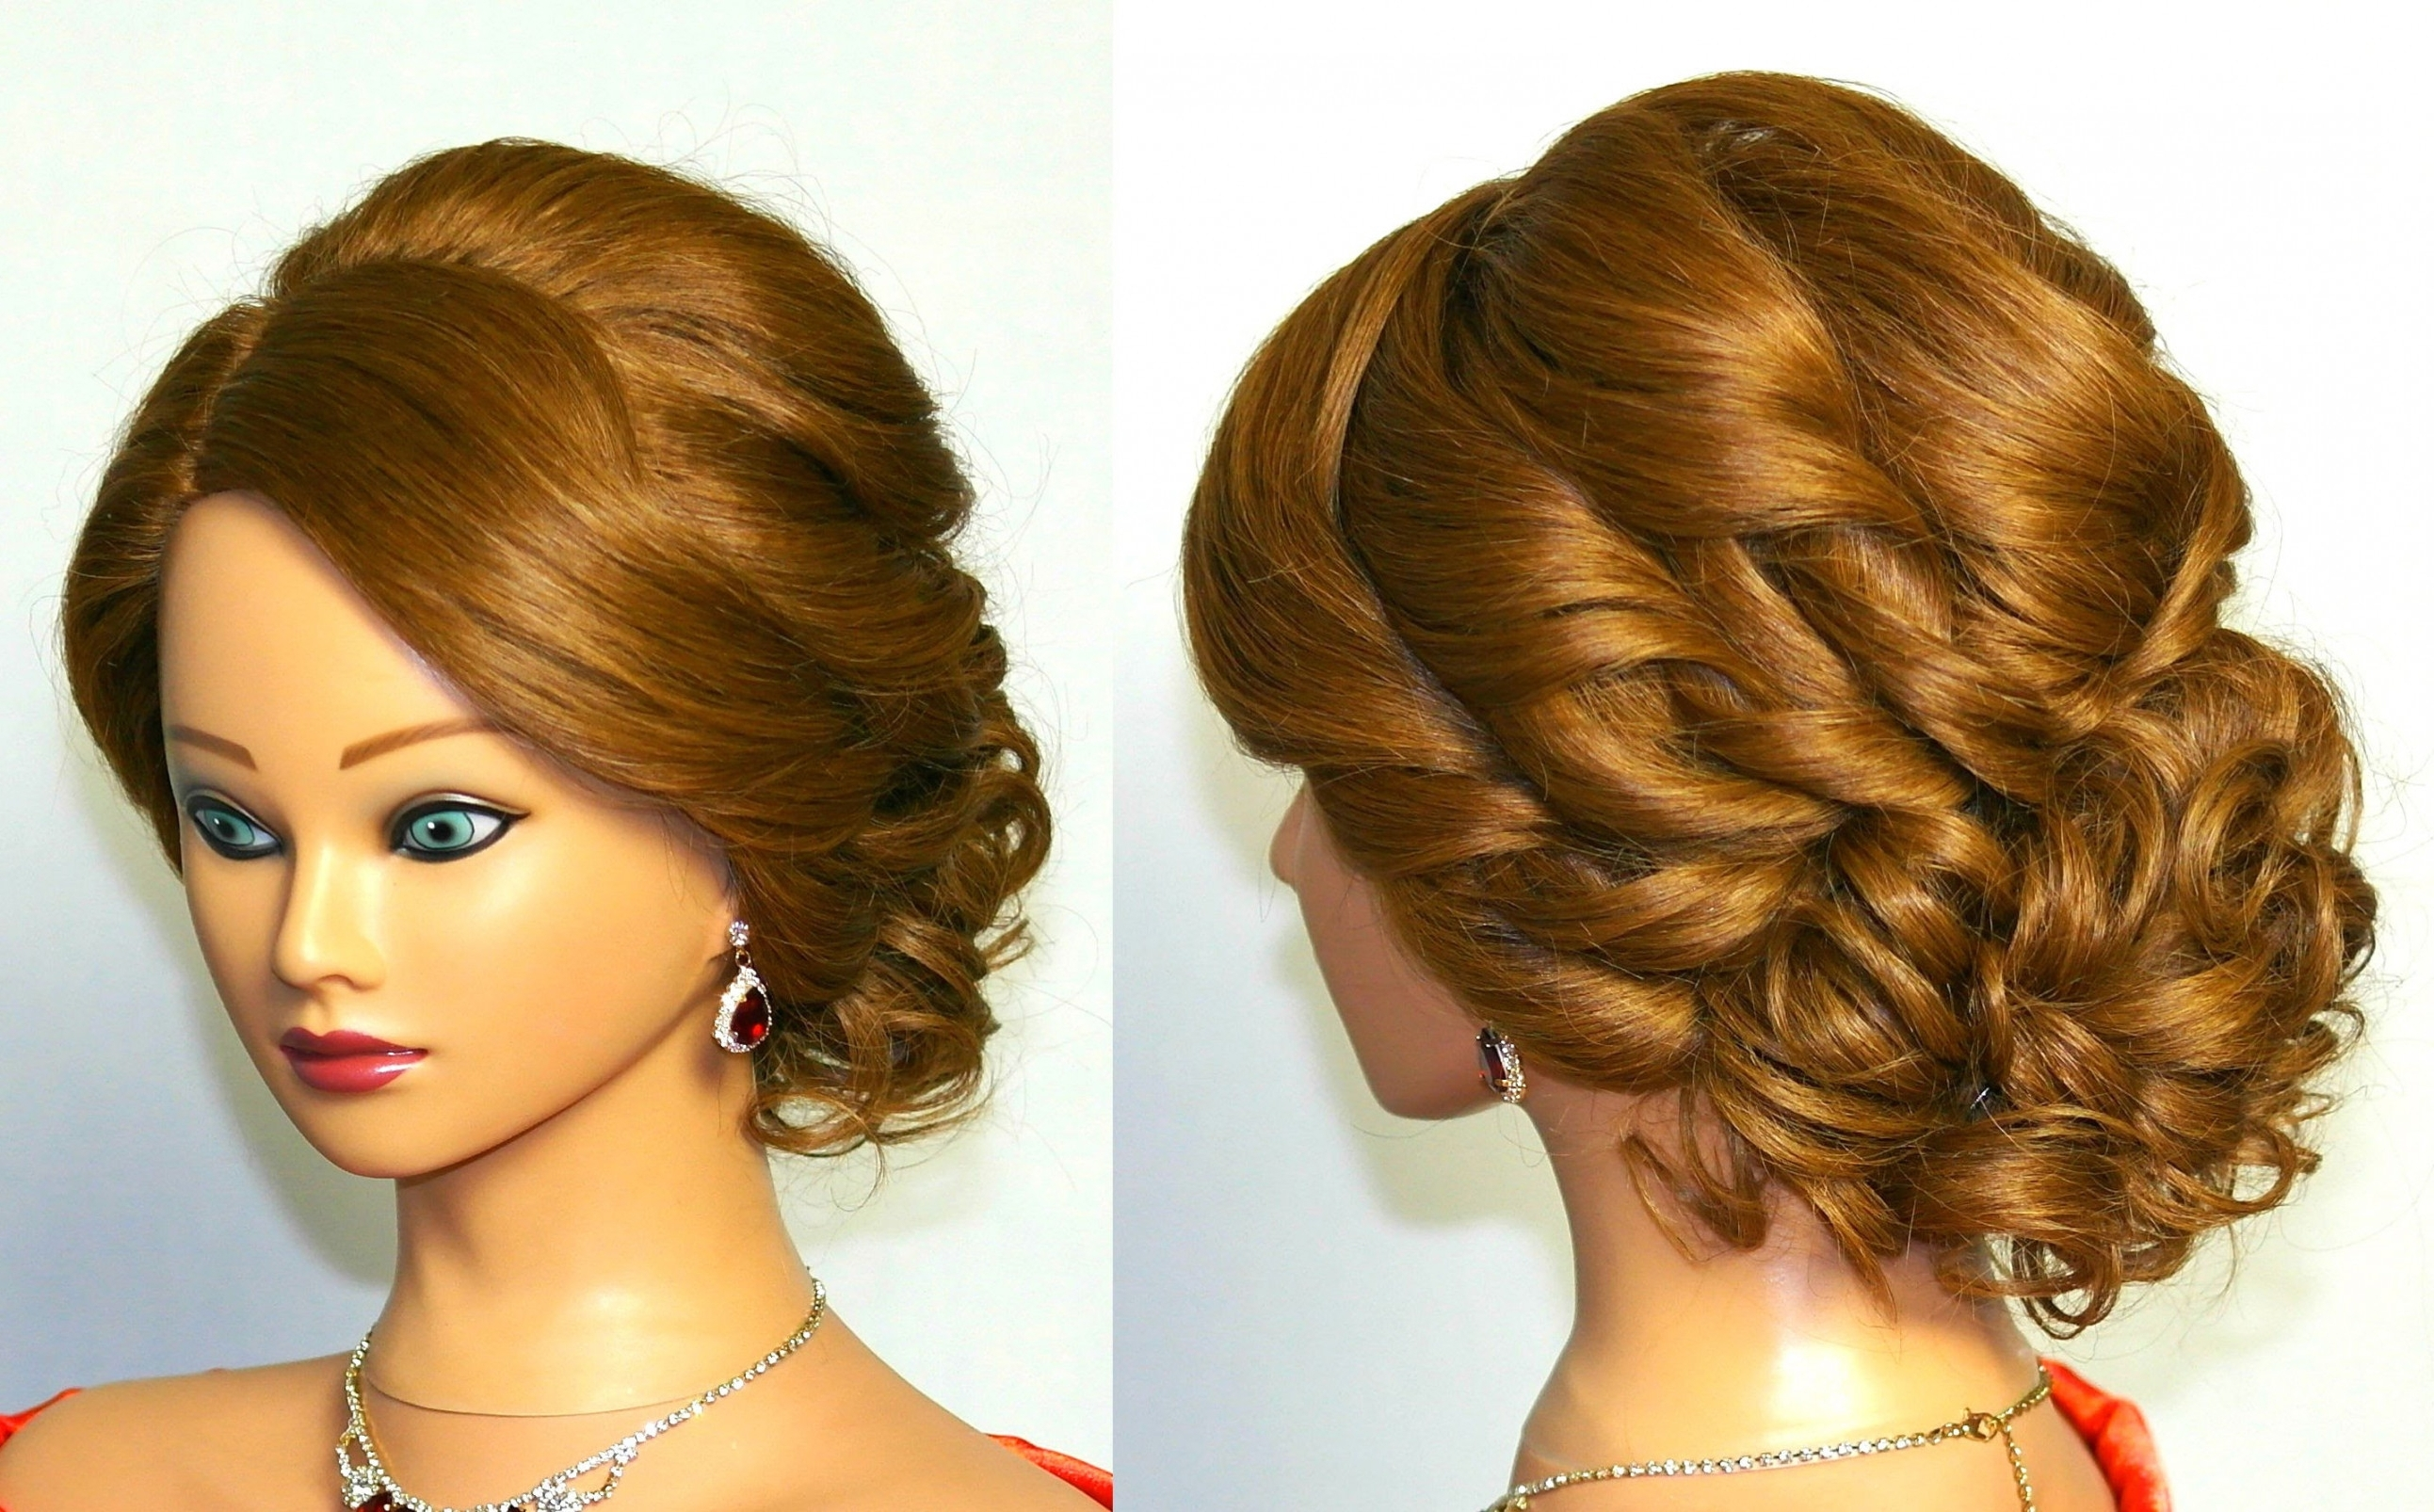 Hair Updo Hairstyles Bridal Curly Updo Hairstyle For Medium Hair In Updo Hairstyles With Bangs For Medium Length Hair (View 8 of 15)